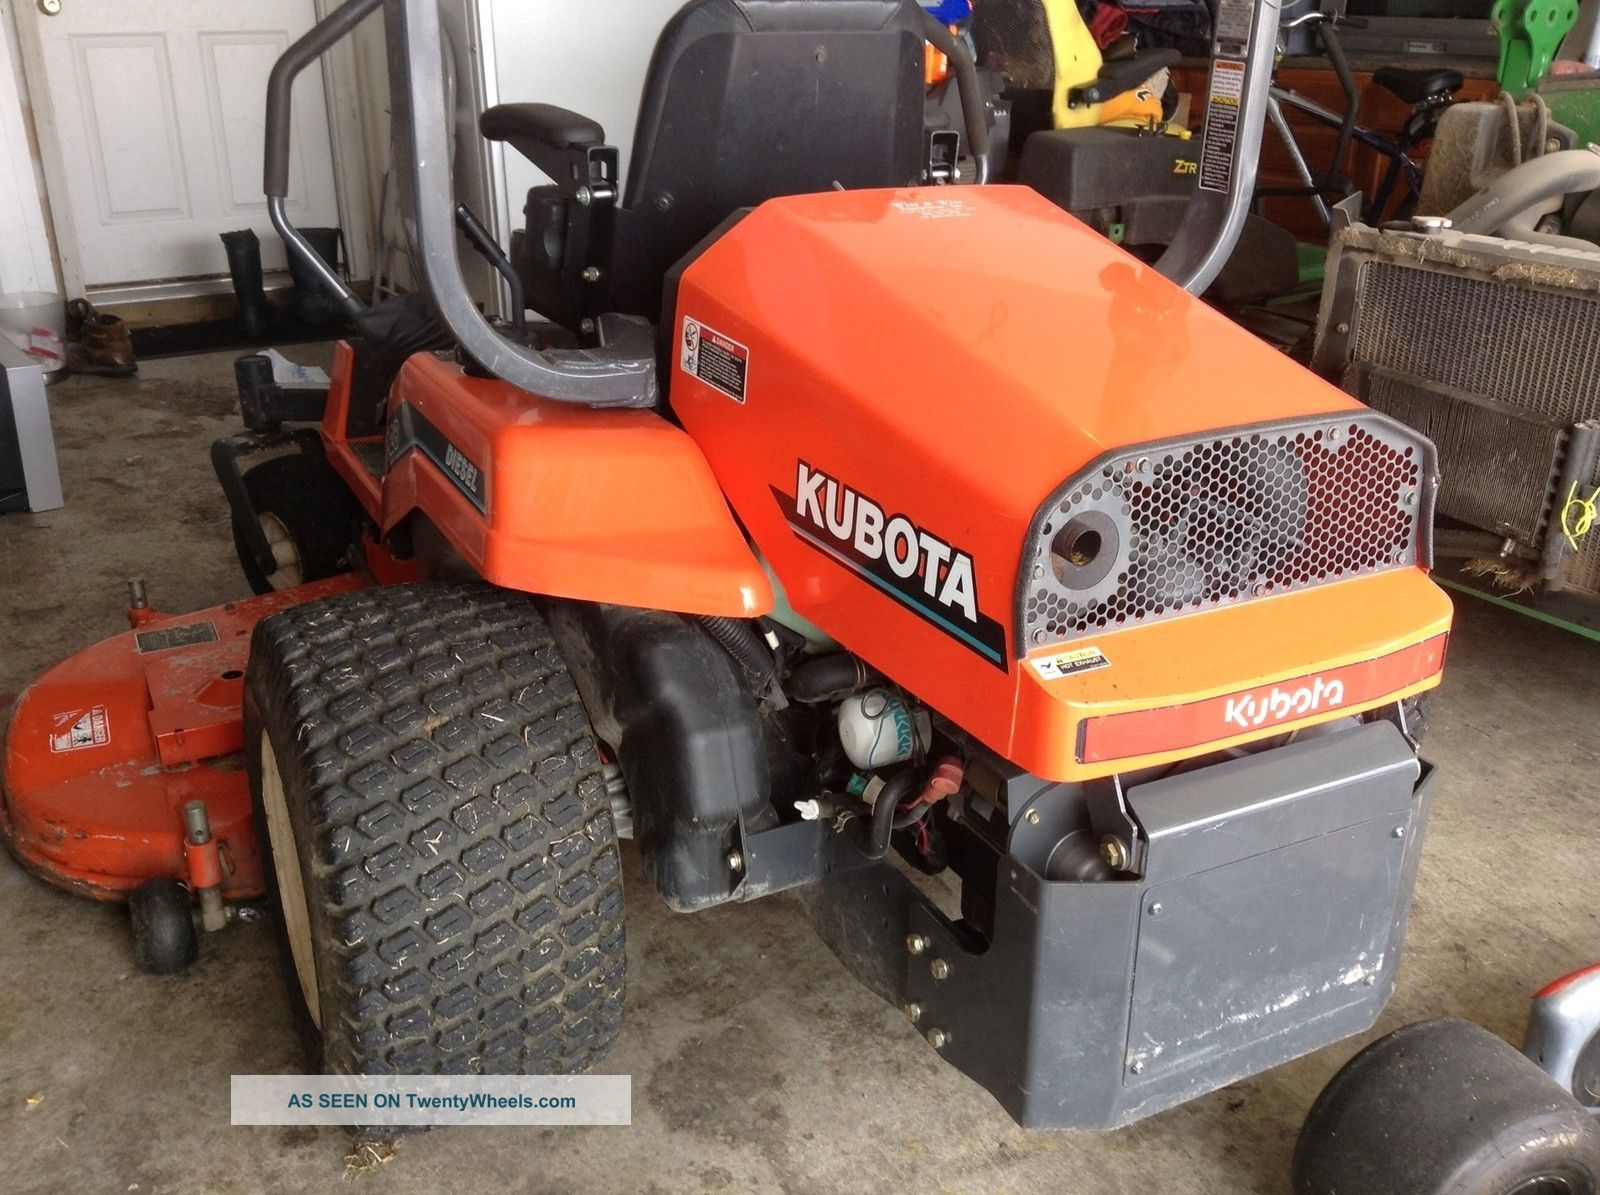 Kubota Zd 28 Zero Turn Mower Tractors photo